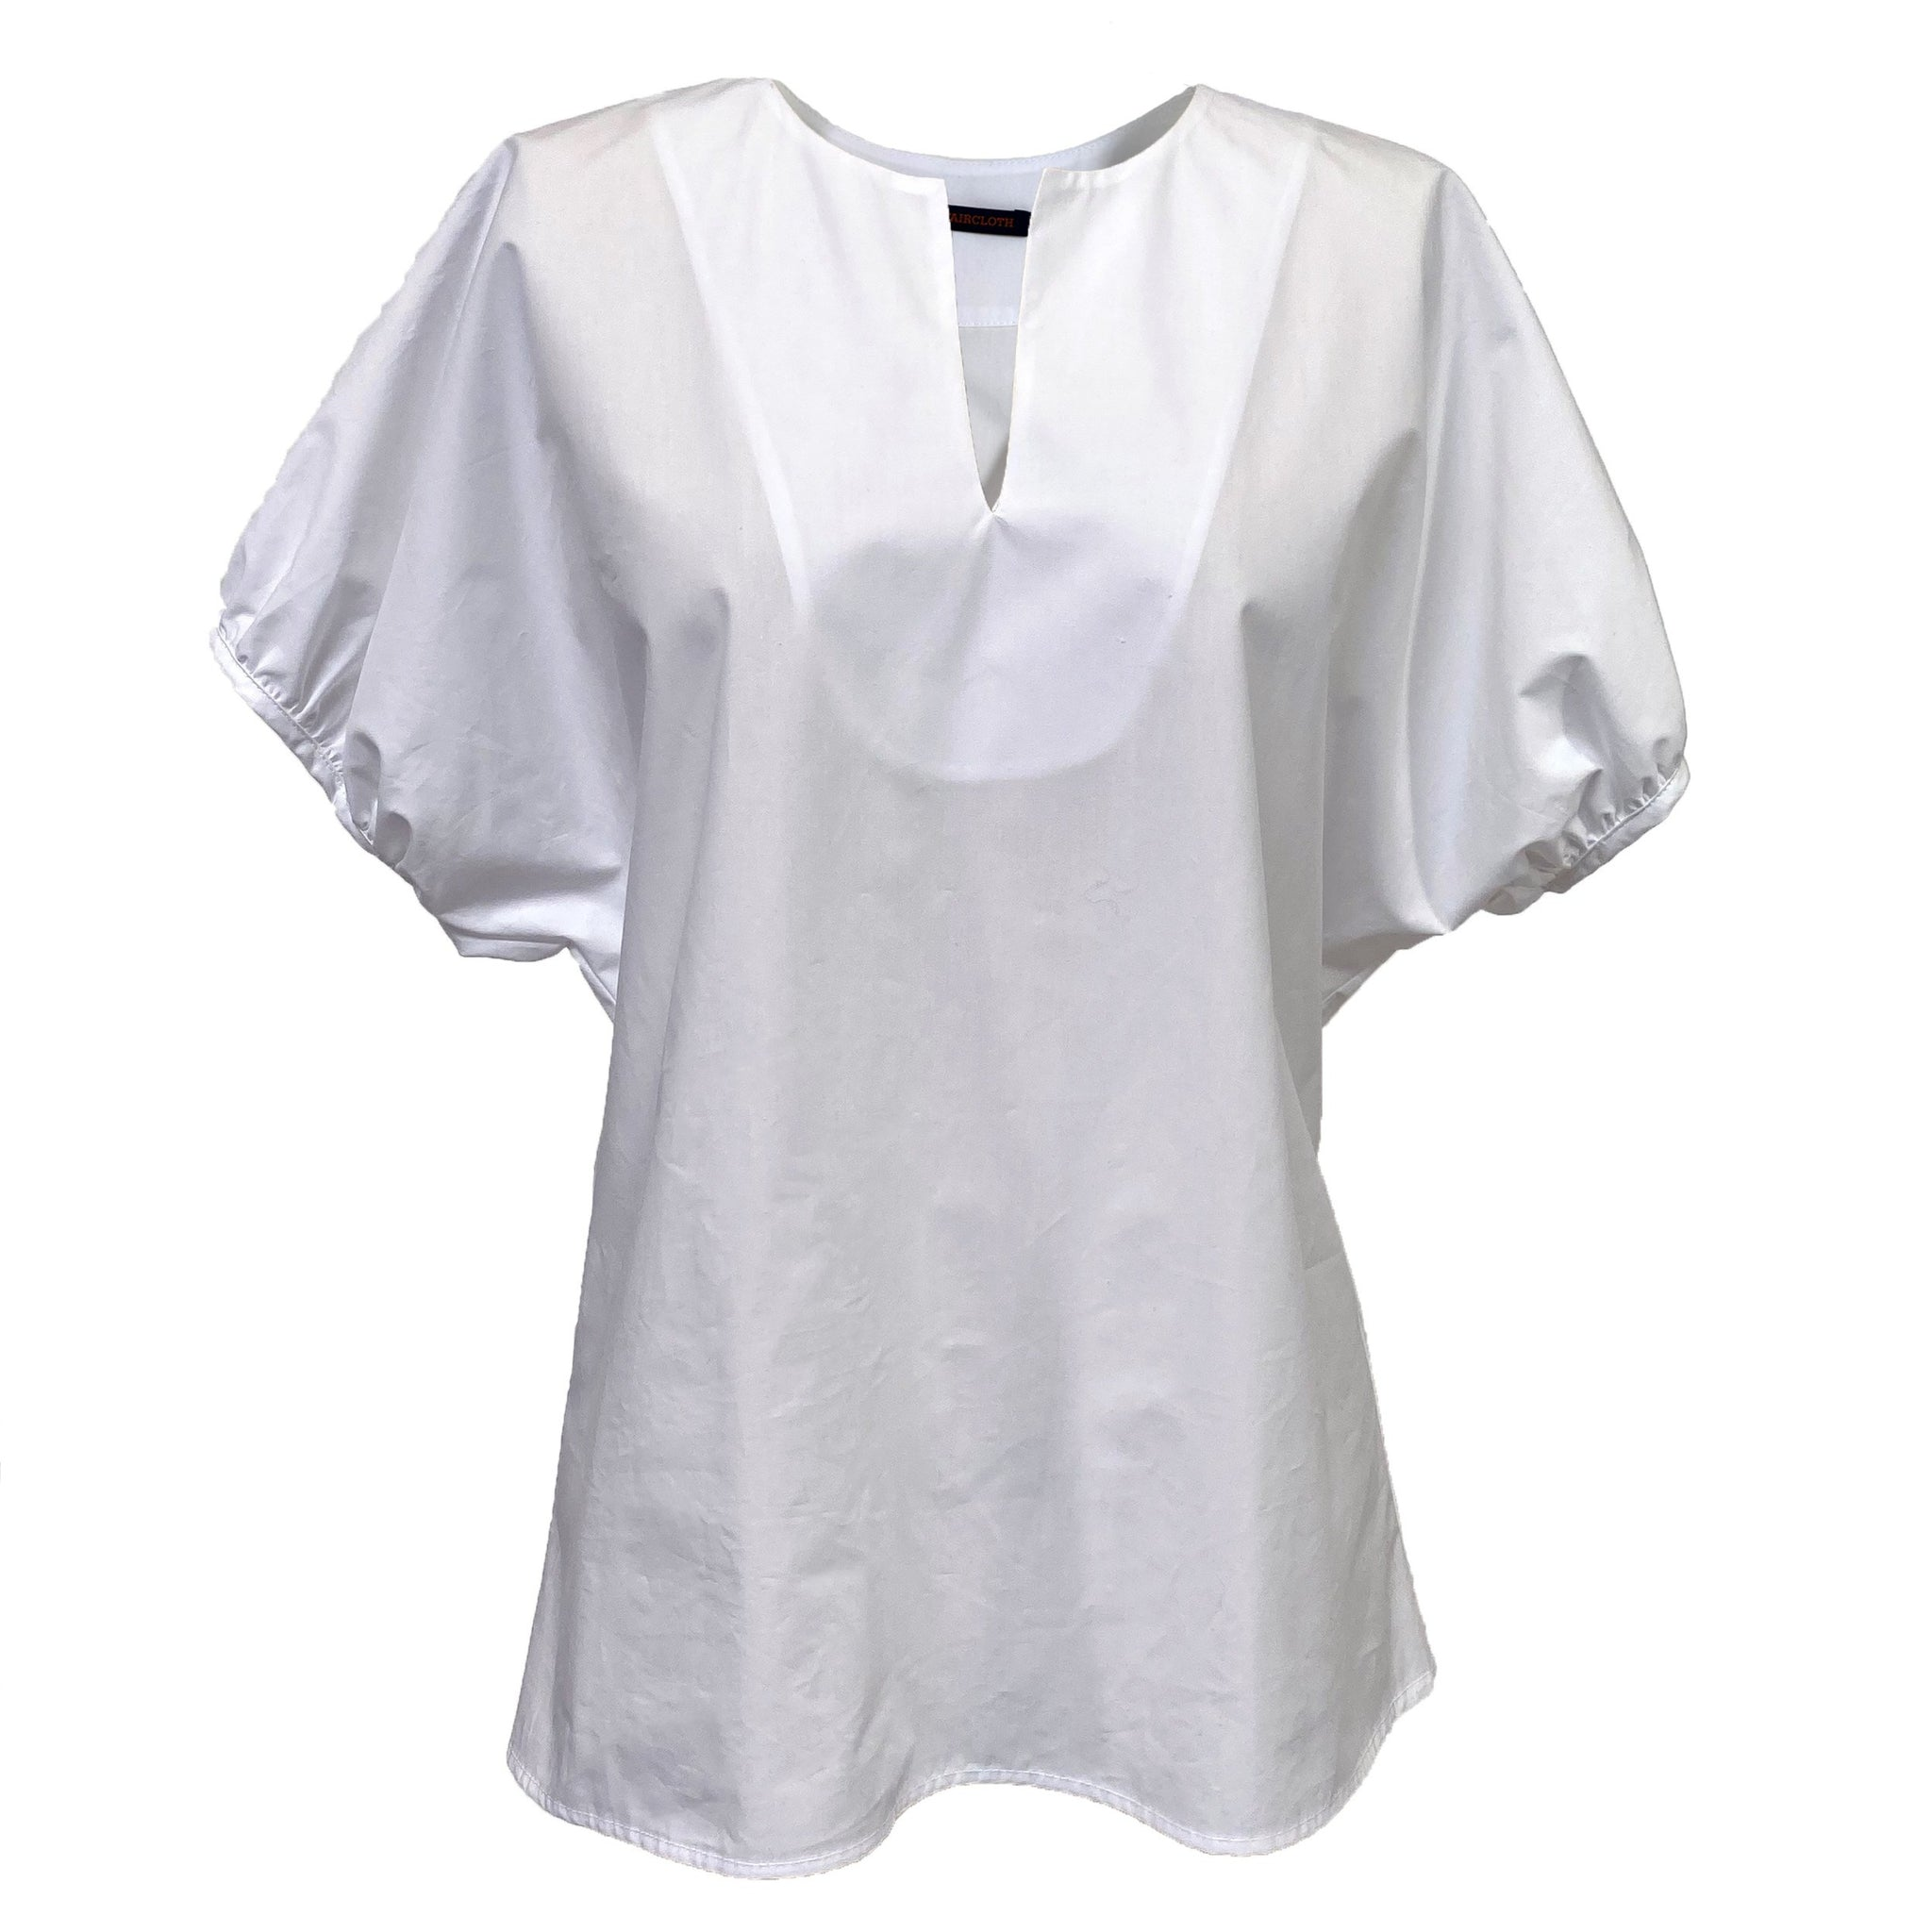 Oversize Puff Sleeve Top in White